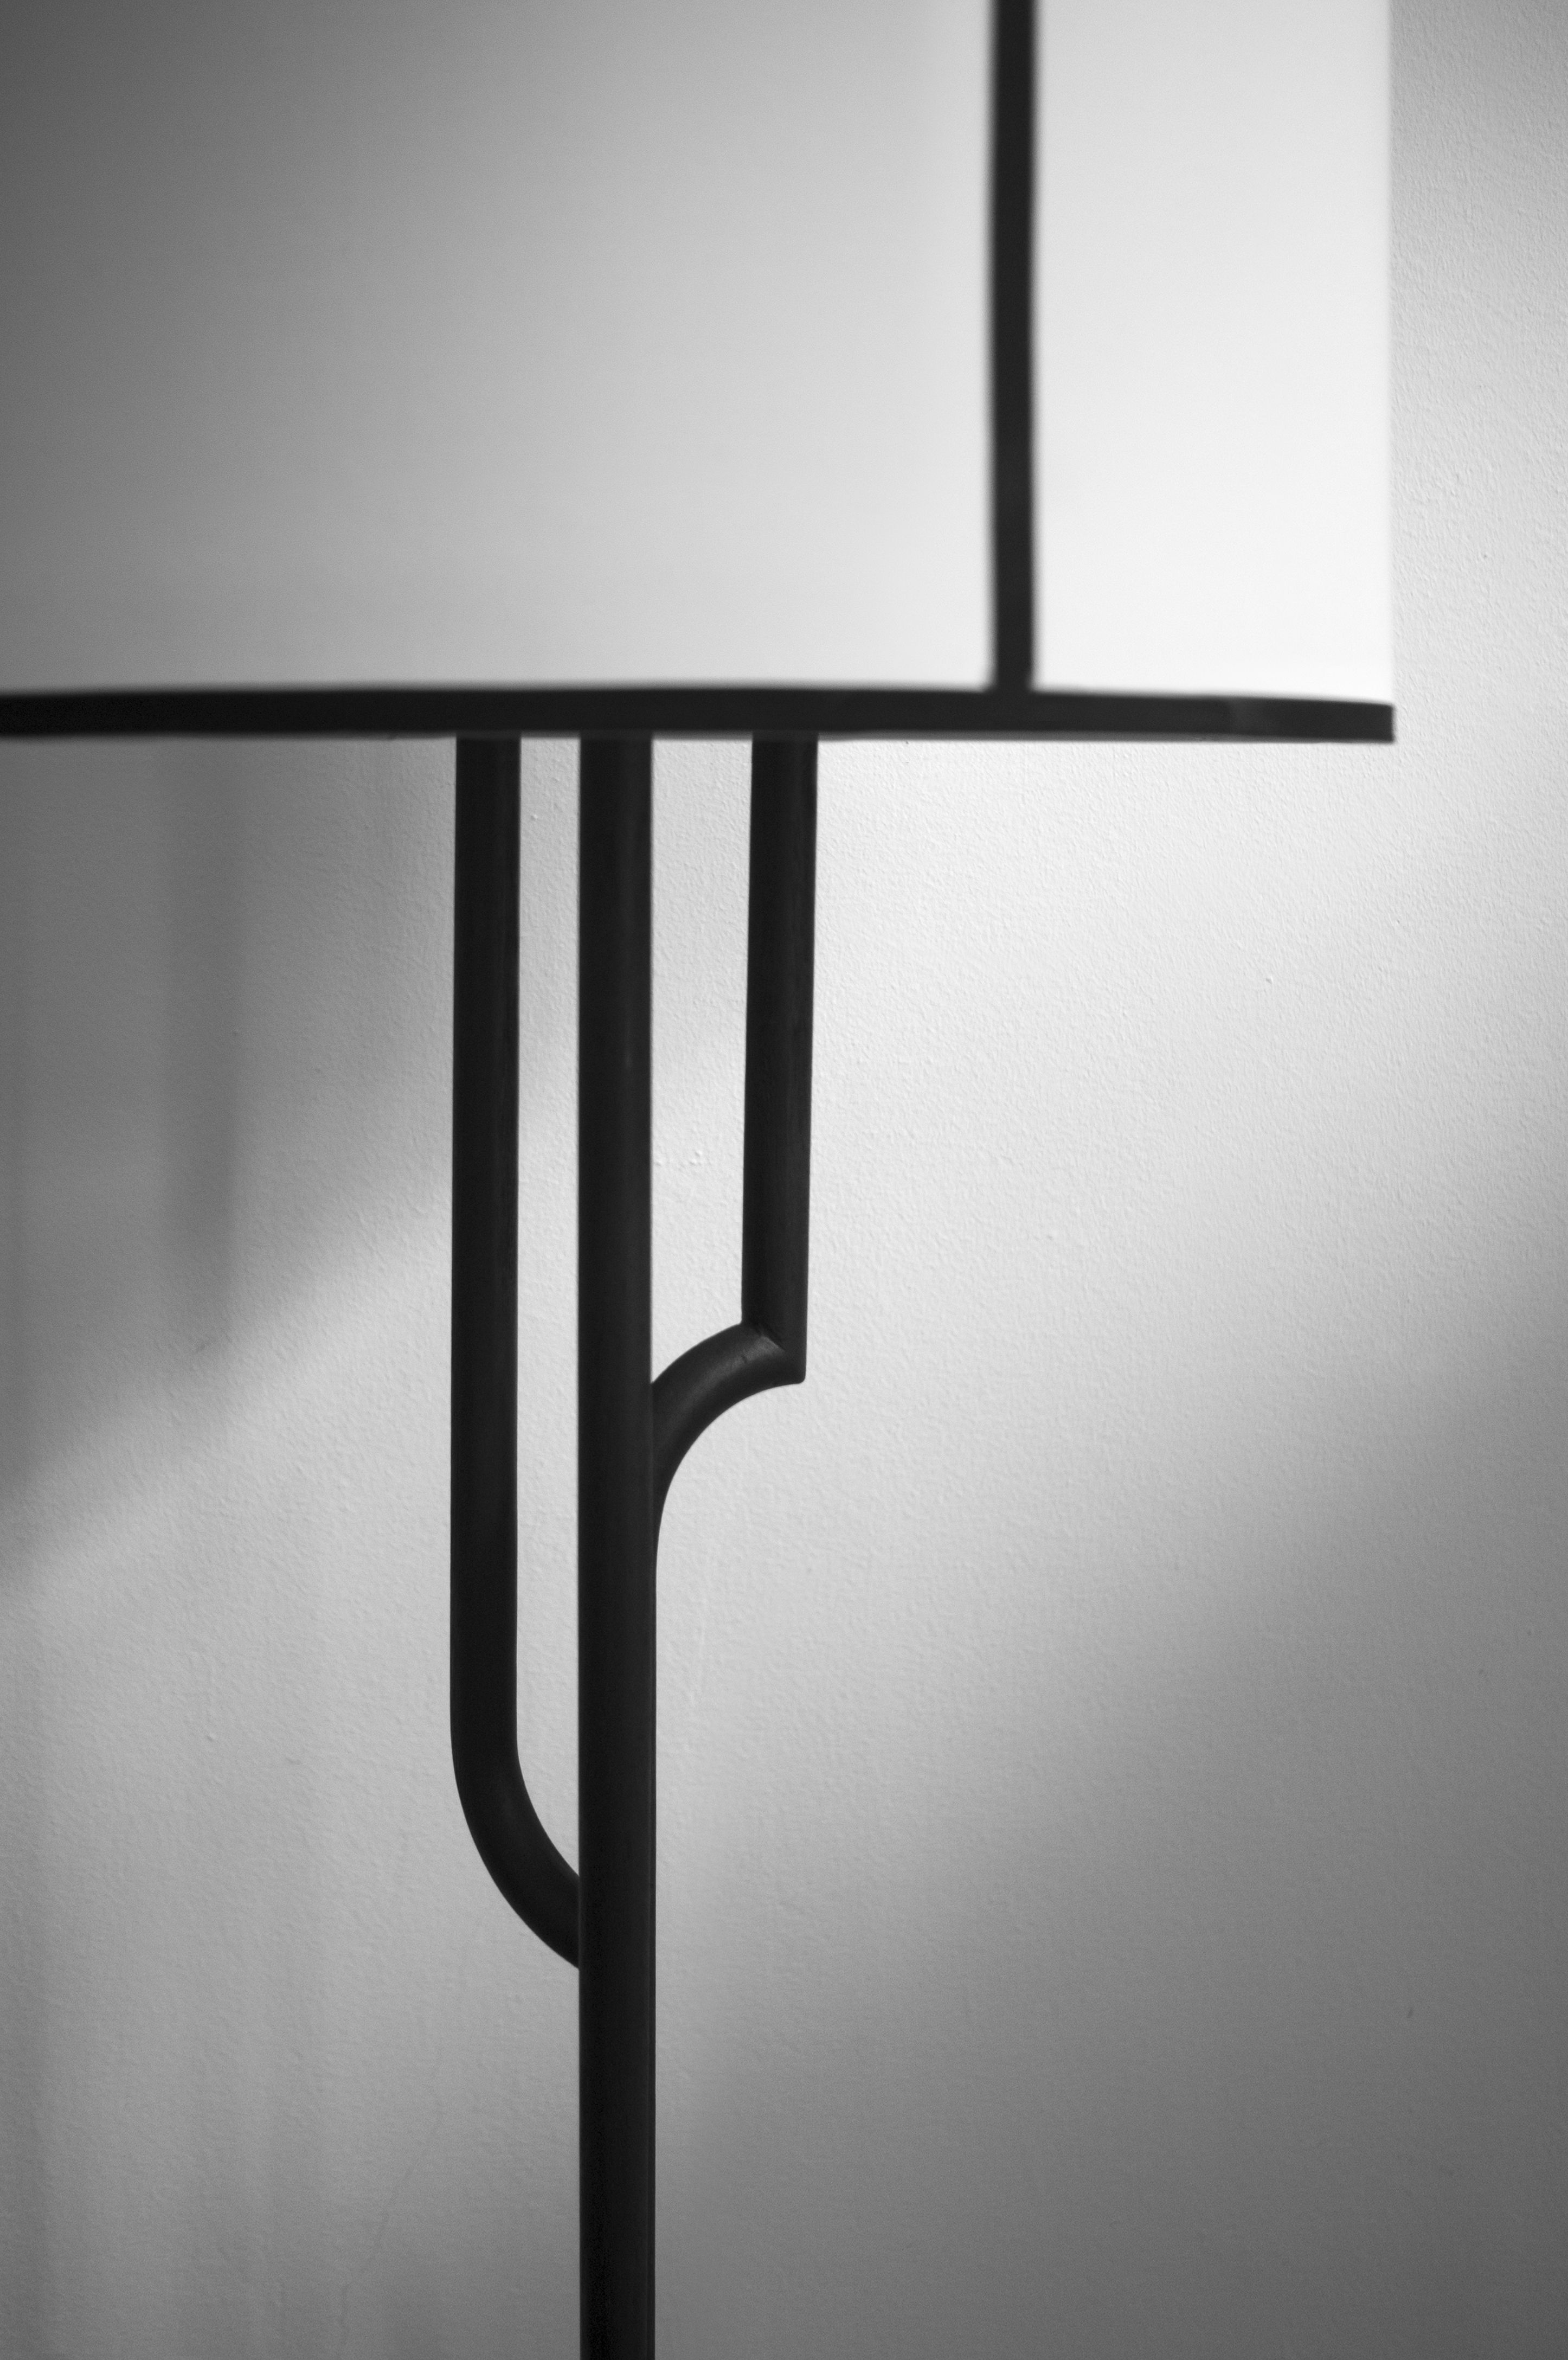 Focus on AKAR DE NISSIM's iconic Floor Lamp GATSBY. Graphic, Black and White with the great Art Deco touch. #Lighting #Gatsby